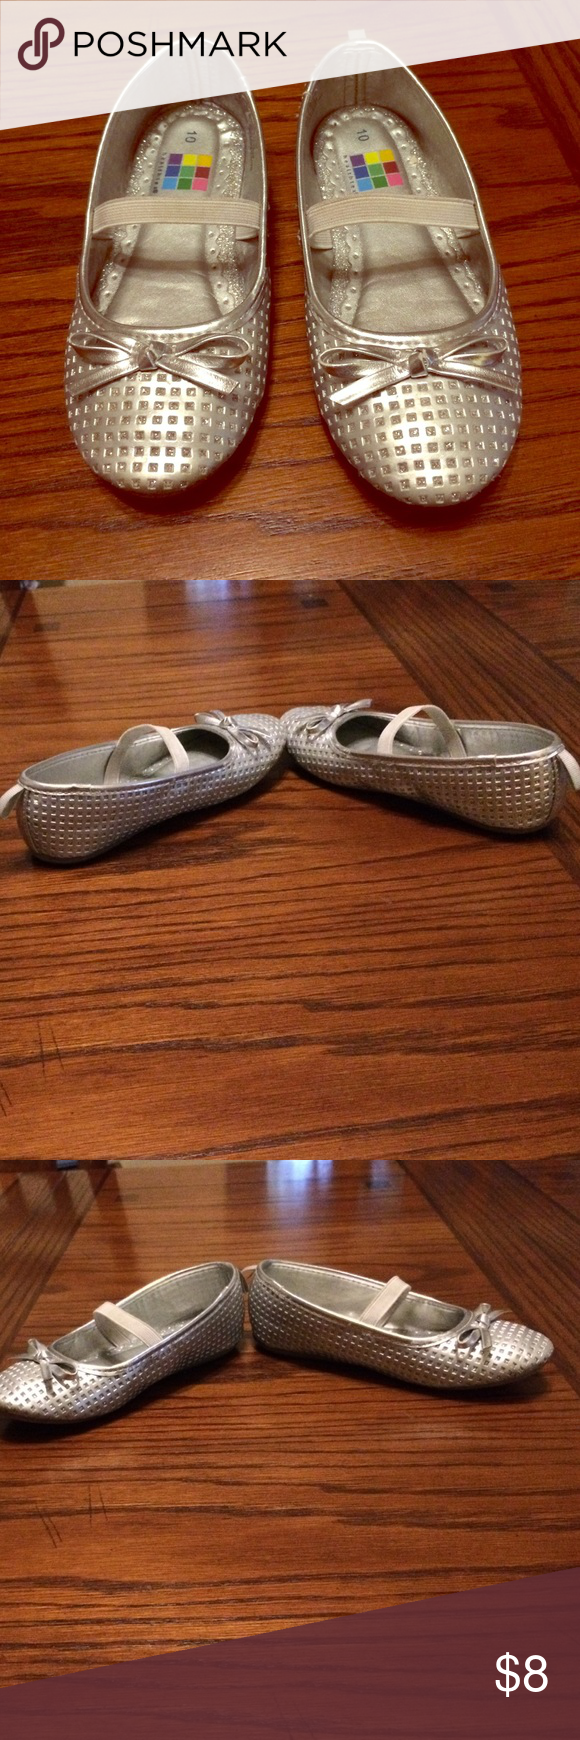 Toddler Girl's Silver Slip-on Shoes Size 10 These shoes were purchased new & have been worn a few times. They are slip-on shoes with a strap that goes across the foot. These are a toddler size 10. My 3 year old wore these. Please make offers! Shoes Dress Shoes